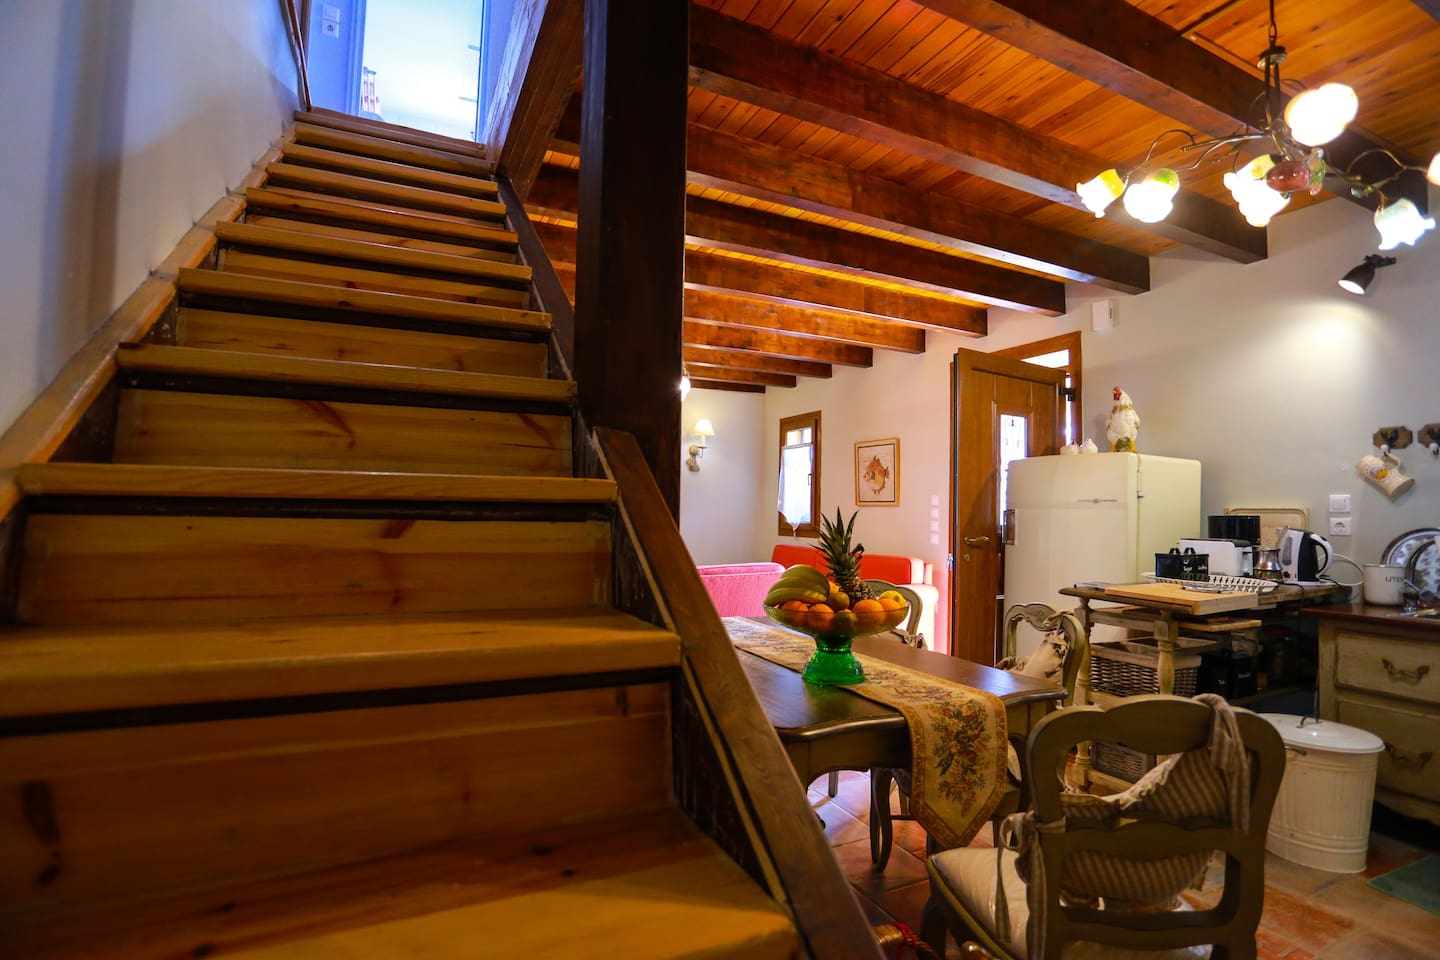 Stairs lead up to the upper level -first floor-